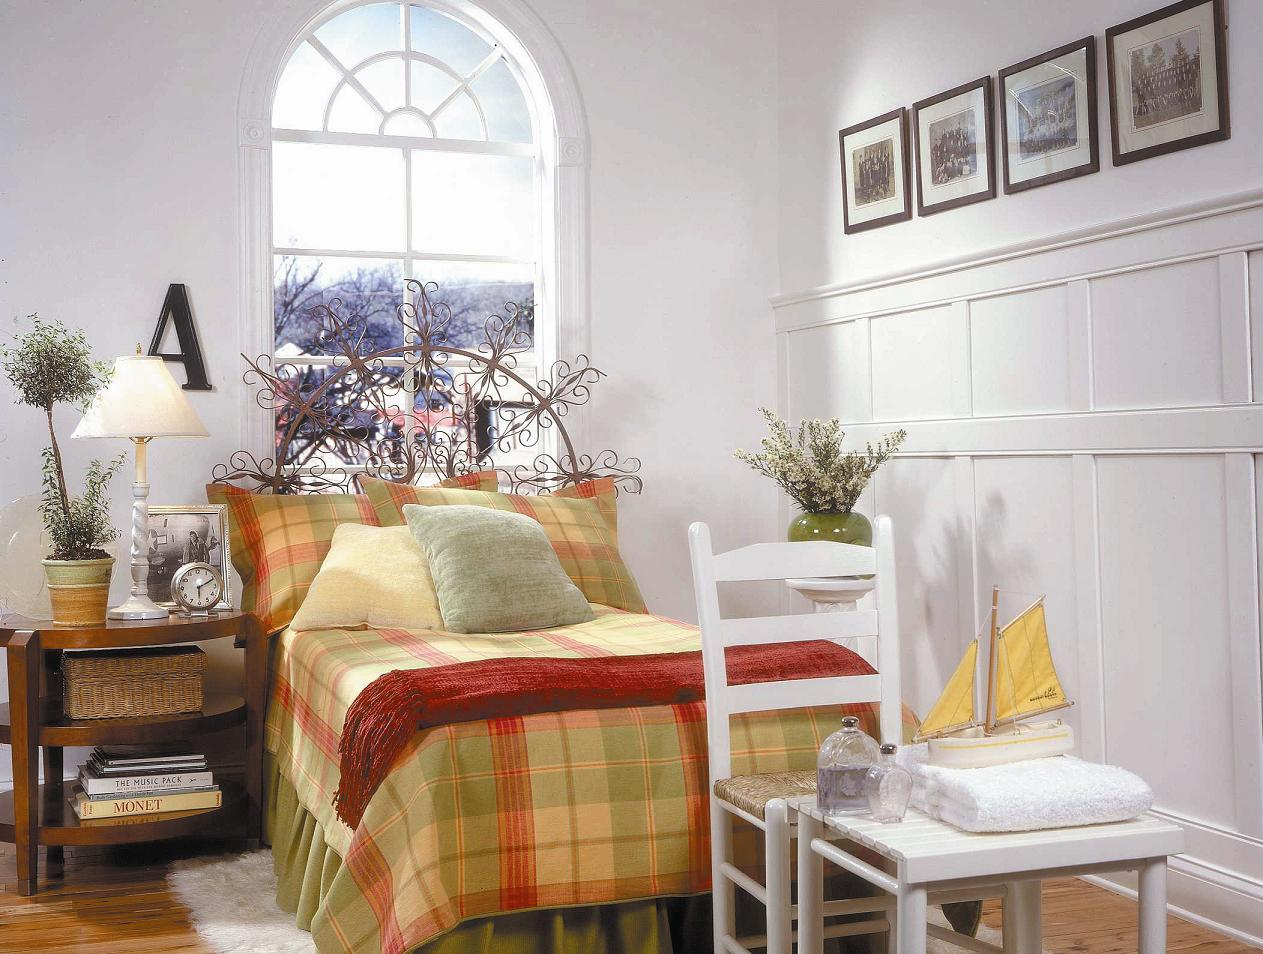 twin-bed-plaid-c-cottage-modern-nec.jpg